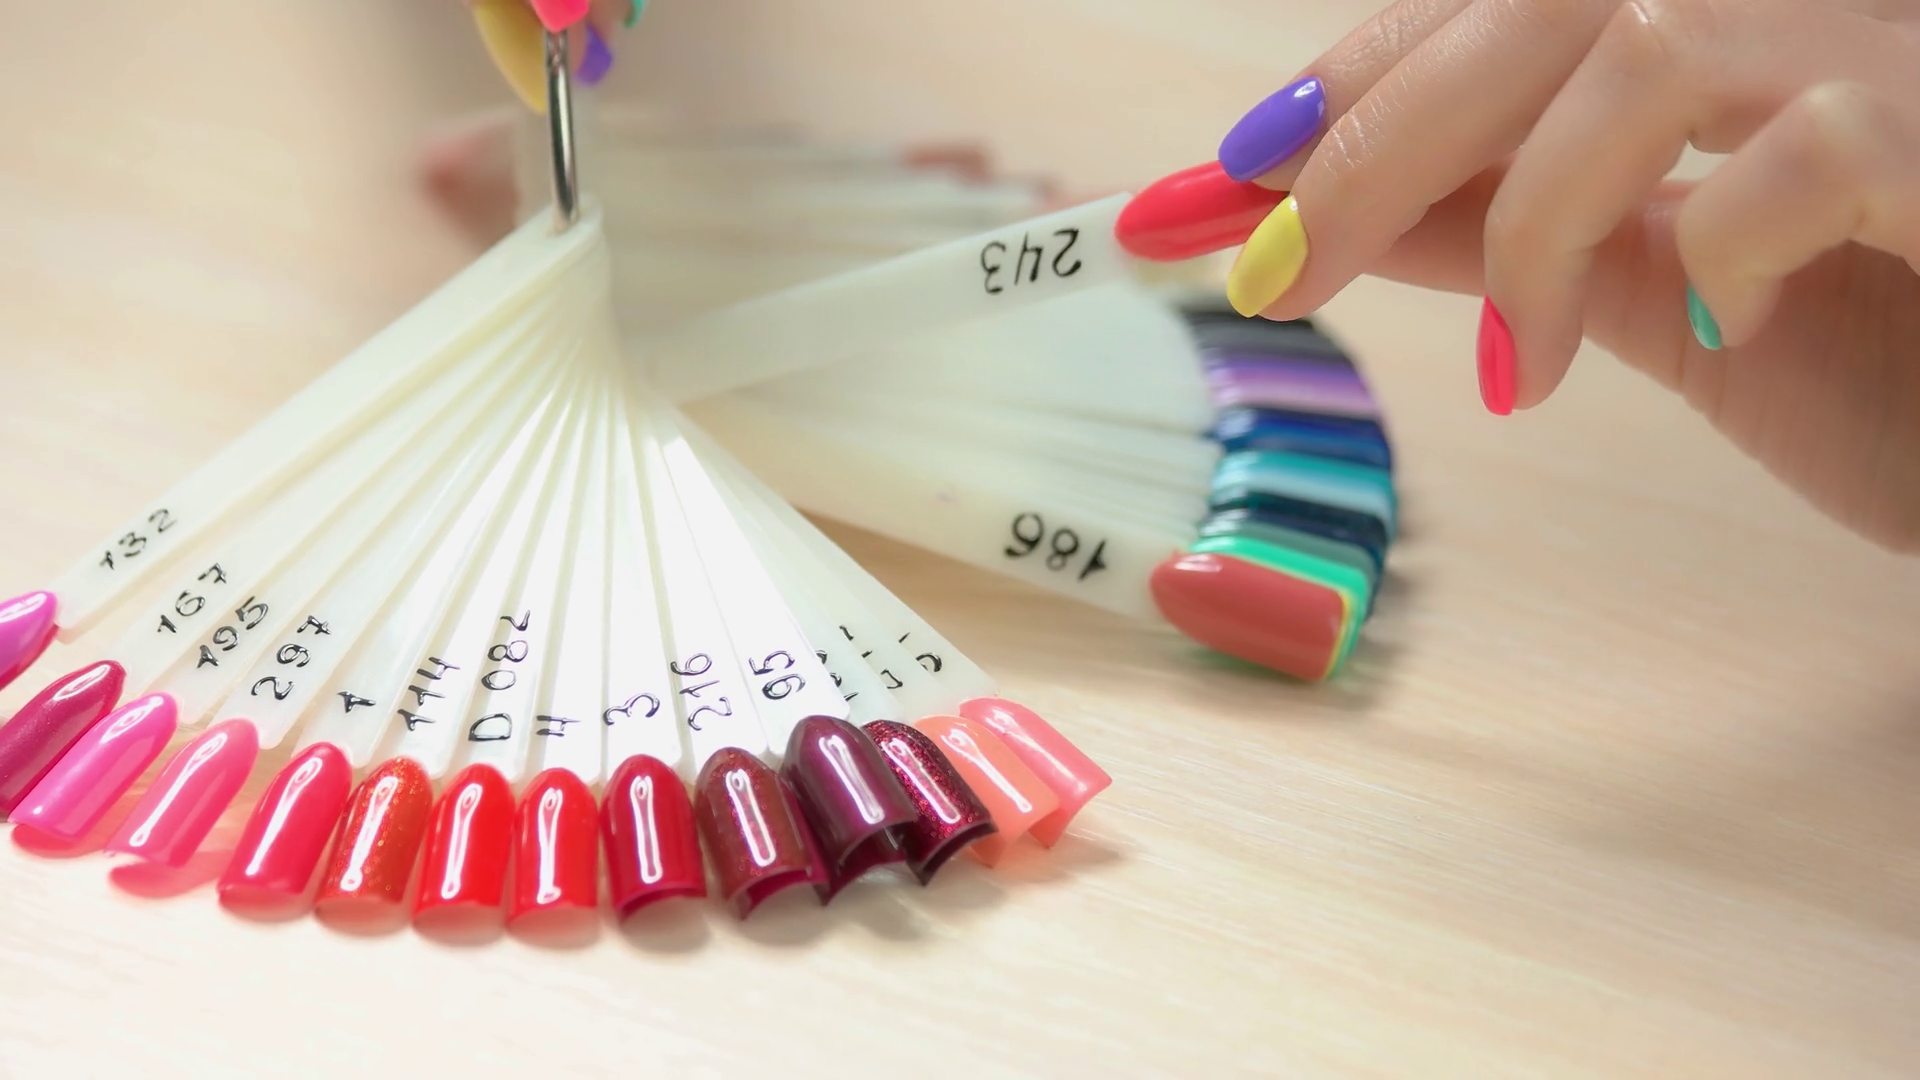 Nail Art Fashion Design Samples Young Woman Hand With Perfect Summer Manicure Choosing Nail Polish Color In Nail Salon Artificial Nails On Transparent Basis Varnish Color Palette For Nails Stock Video Footage